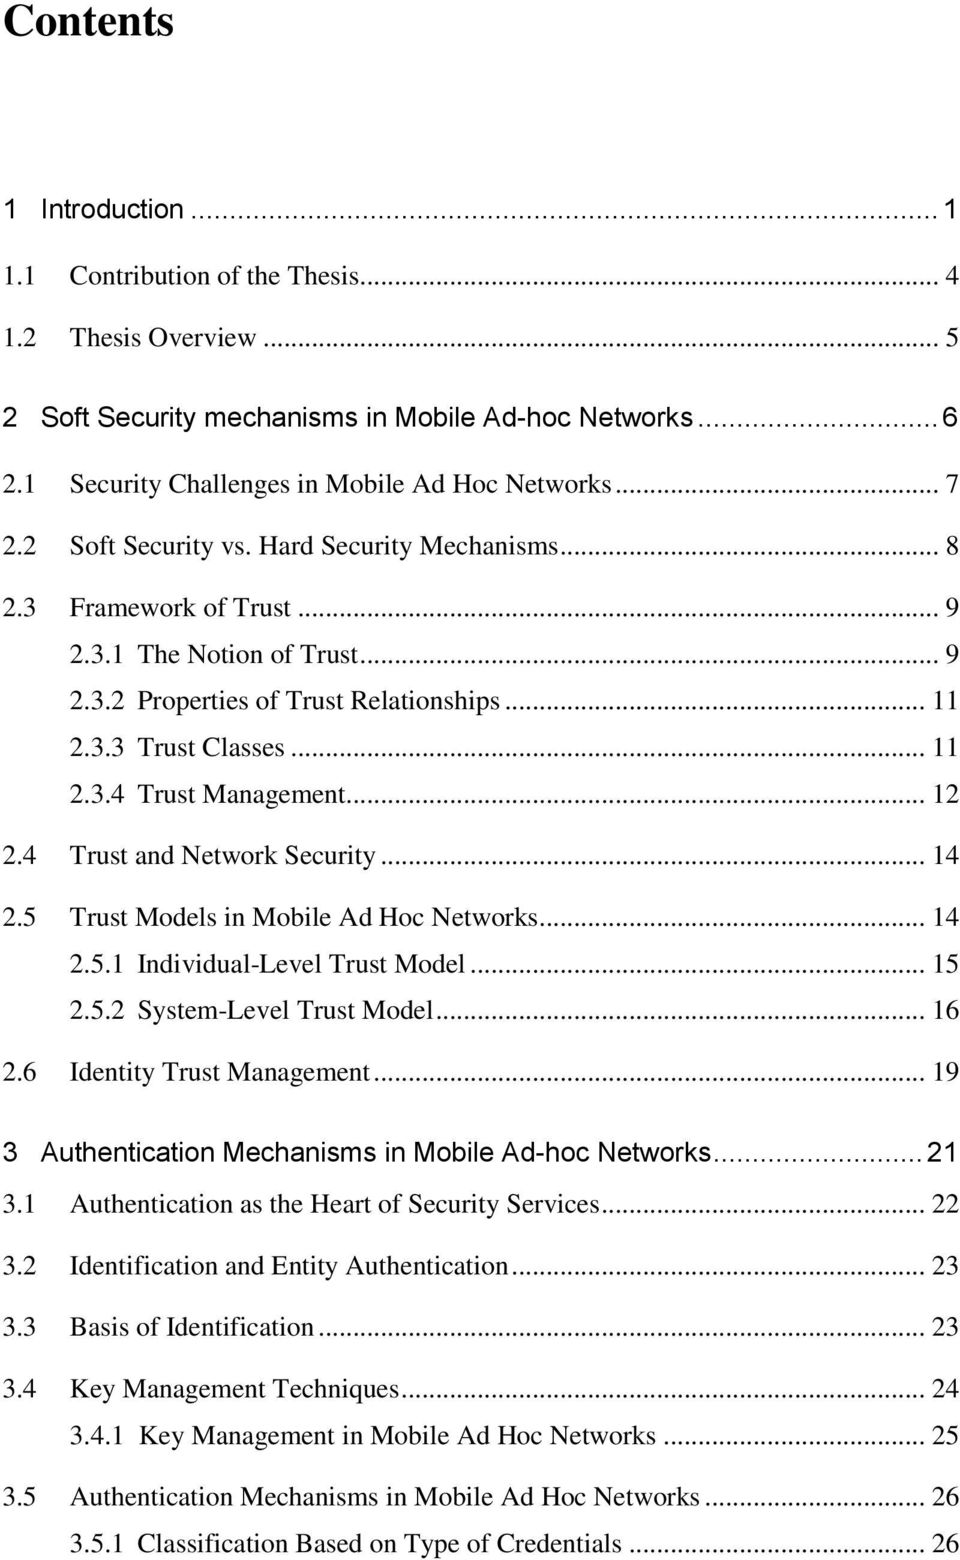 .. 12 2.4 Trust and Network Security... 14 2.5 Trust Models in Mobile Ad Hoc Networks... 14 2.5.1 Individual-Level Trust Model... 15 2.5.2 System-Level Trust Model... 16 2.6 Identity Trust Management.